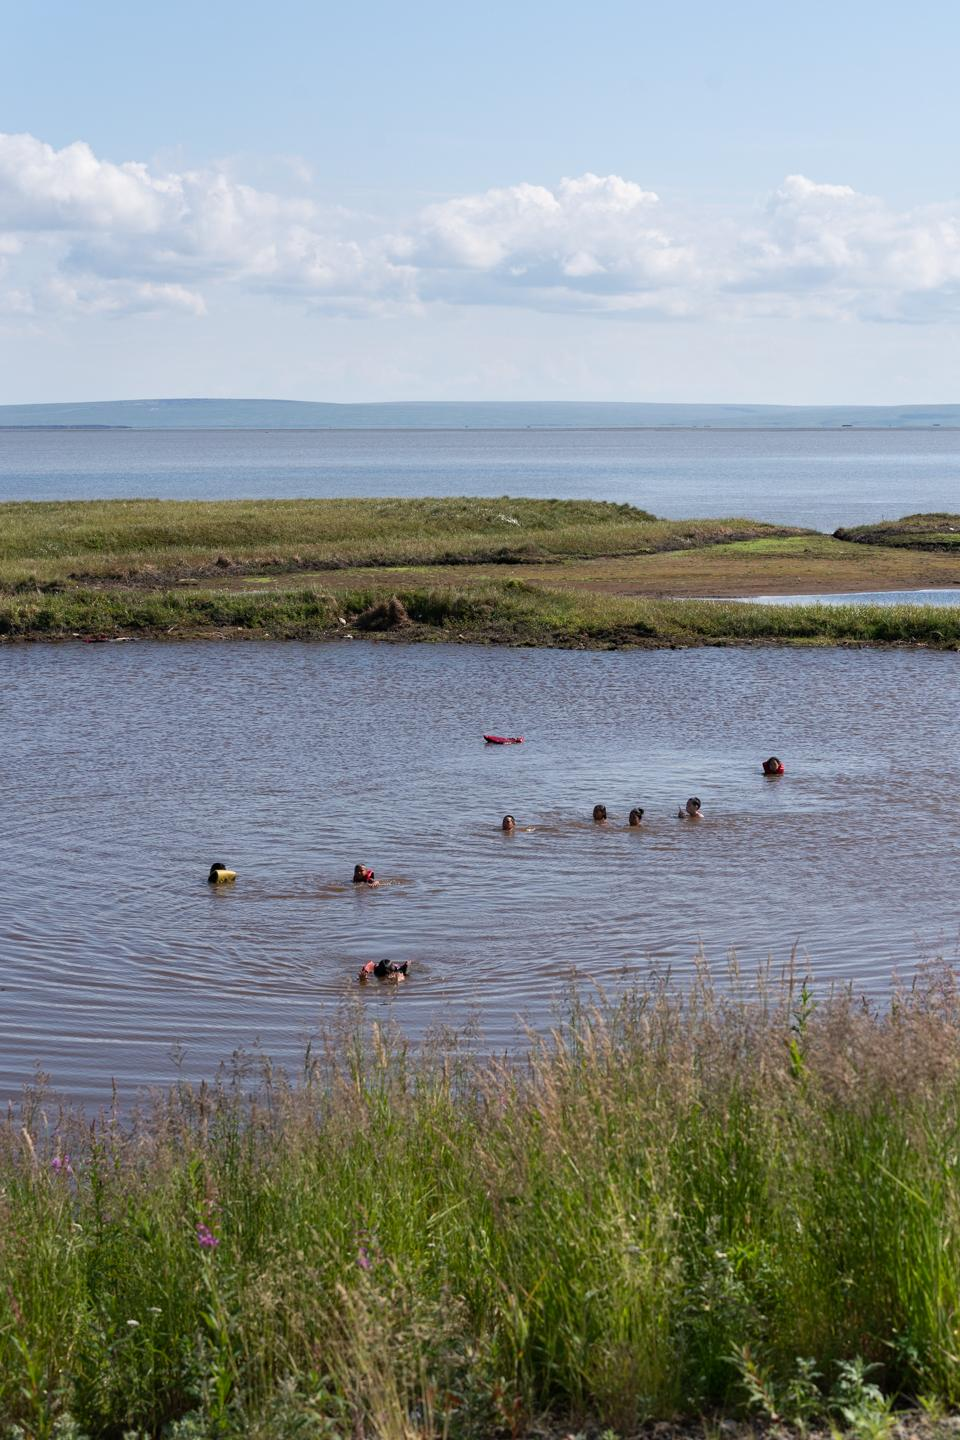 The pond next to the airport turns into a swimming hole on hot summer days. The pond used to hold the communities drinking water until the Ninglick River flooded contaminating the water. July 16, 2020 in Newtok, Alaska.